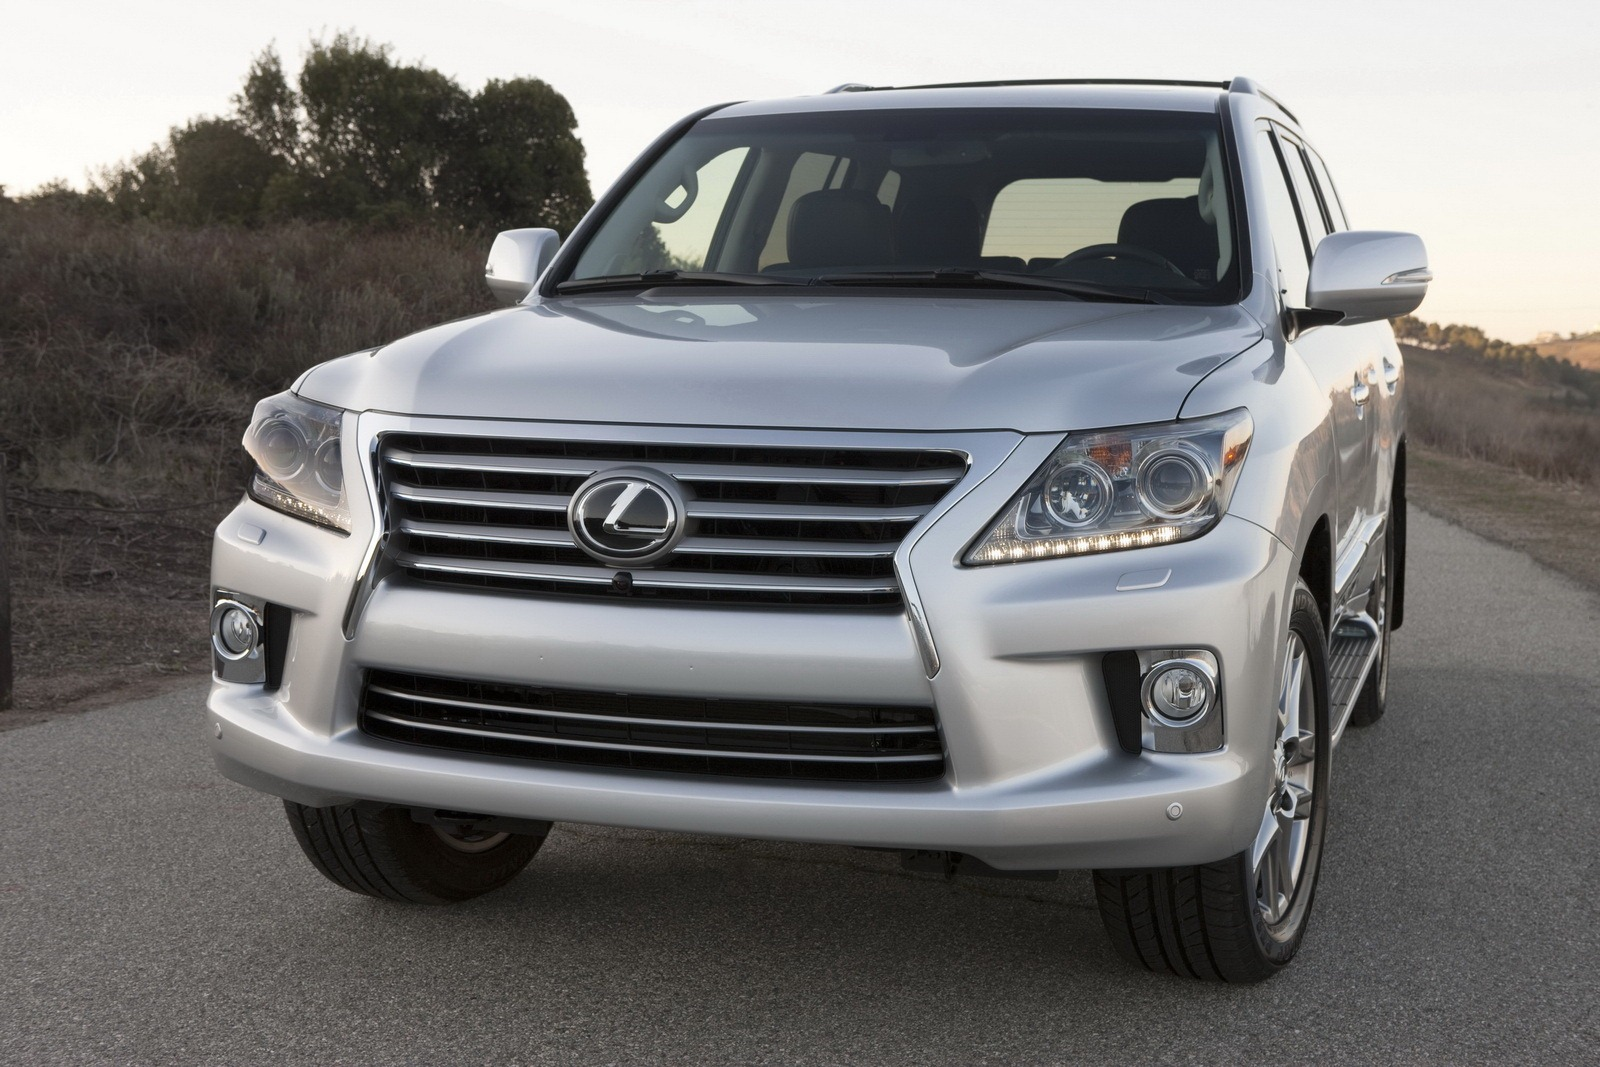 2013 Lexus LX 570 Luxury SUV 1 2013 Lexus LX 570 Luxury SUV   An Overview